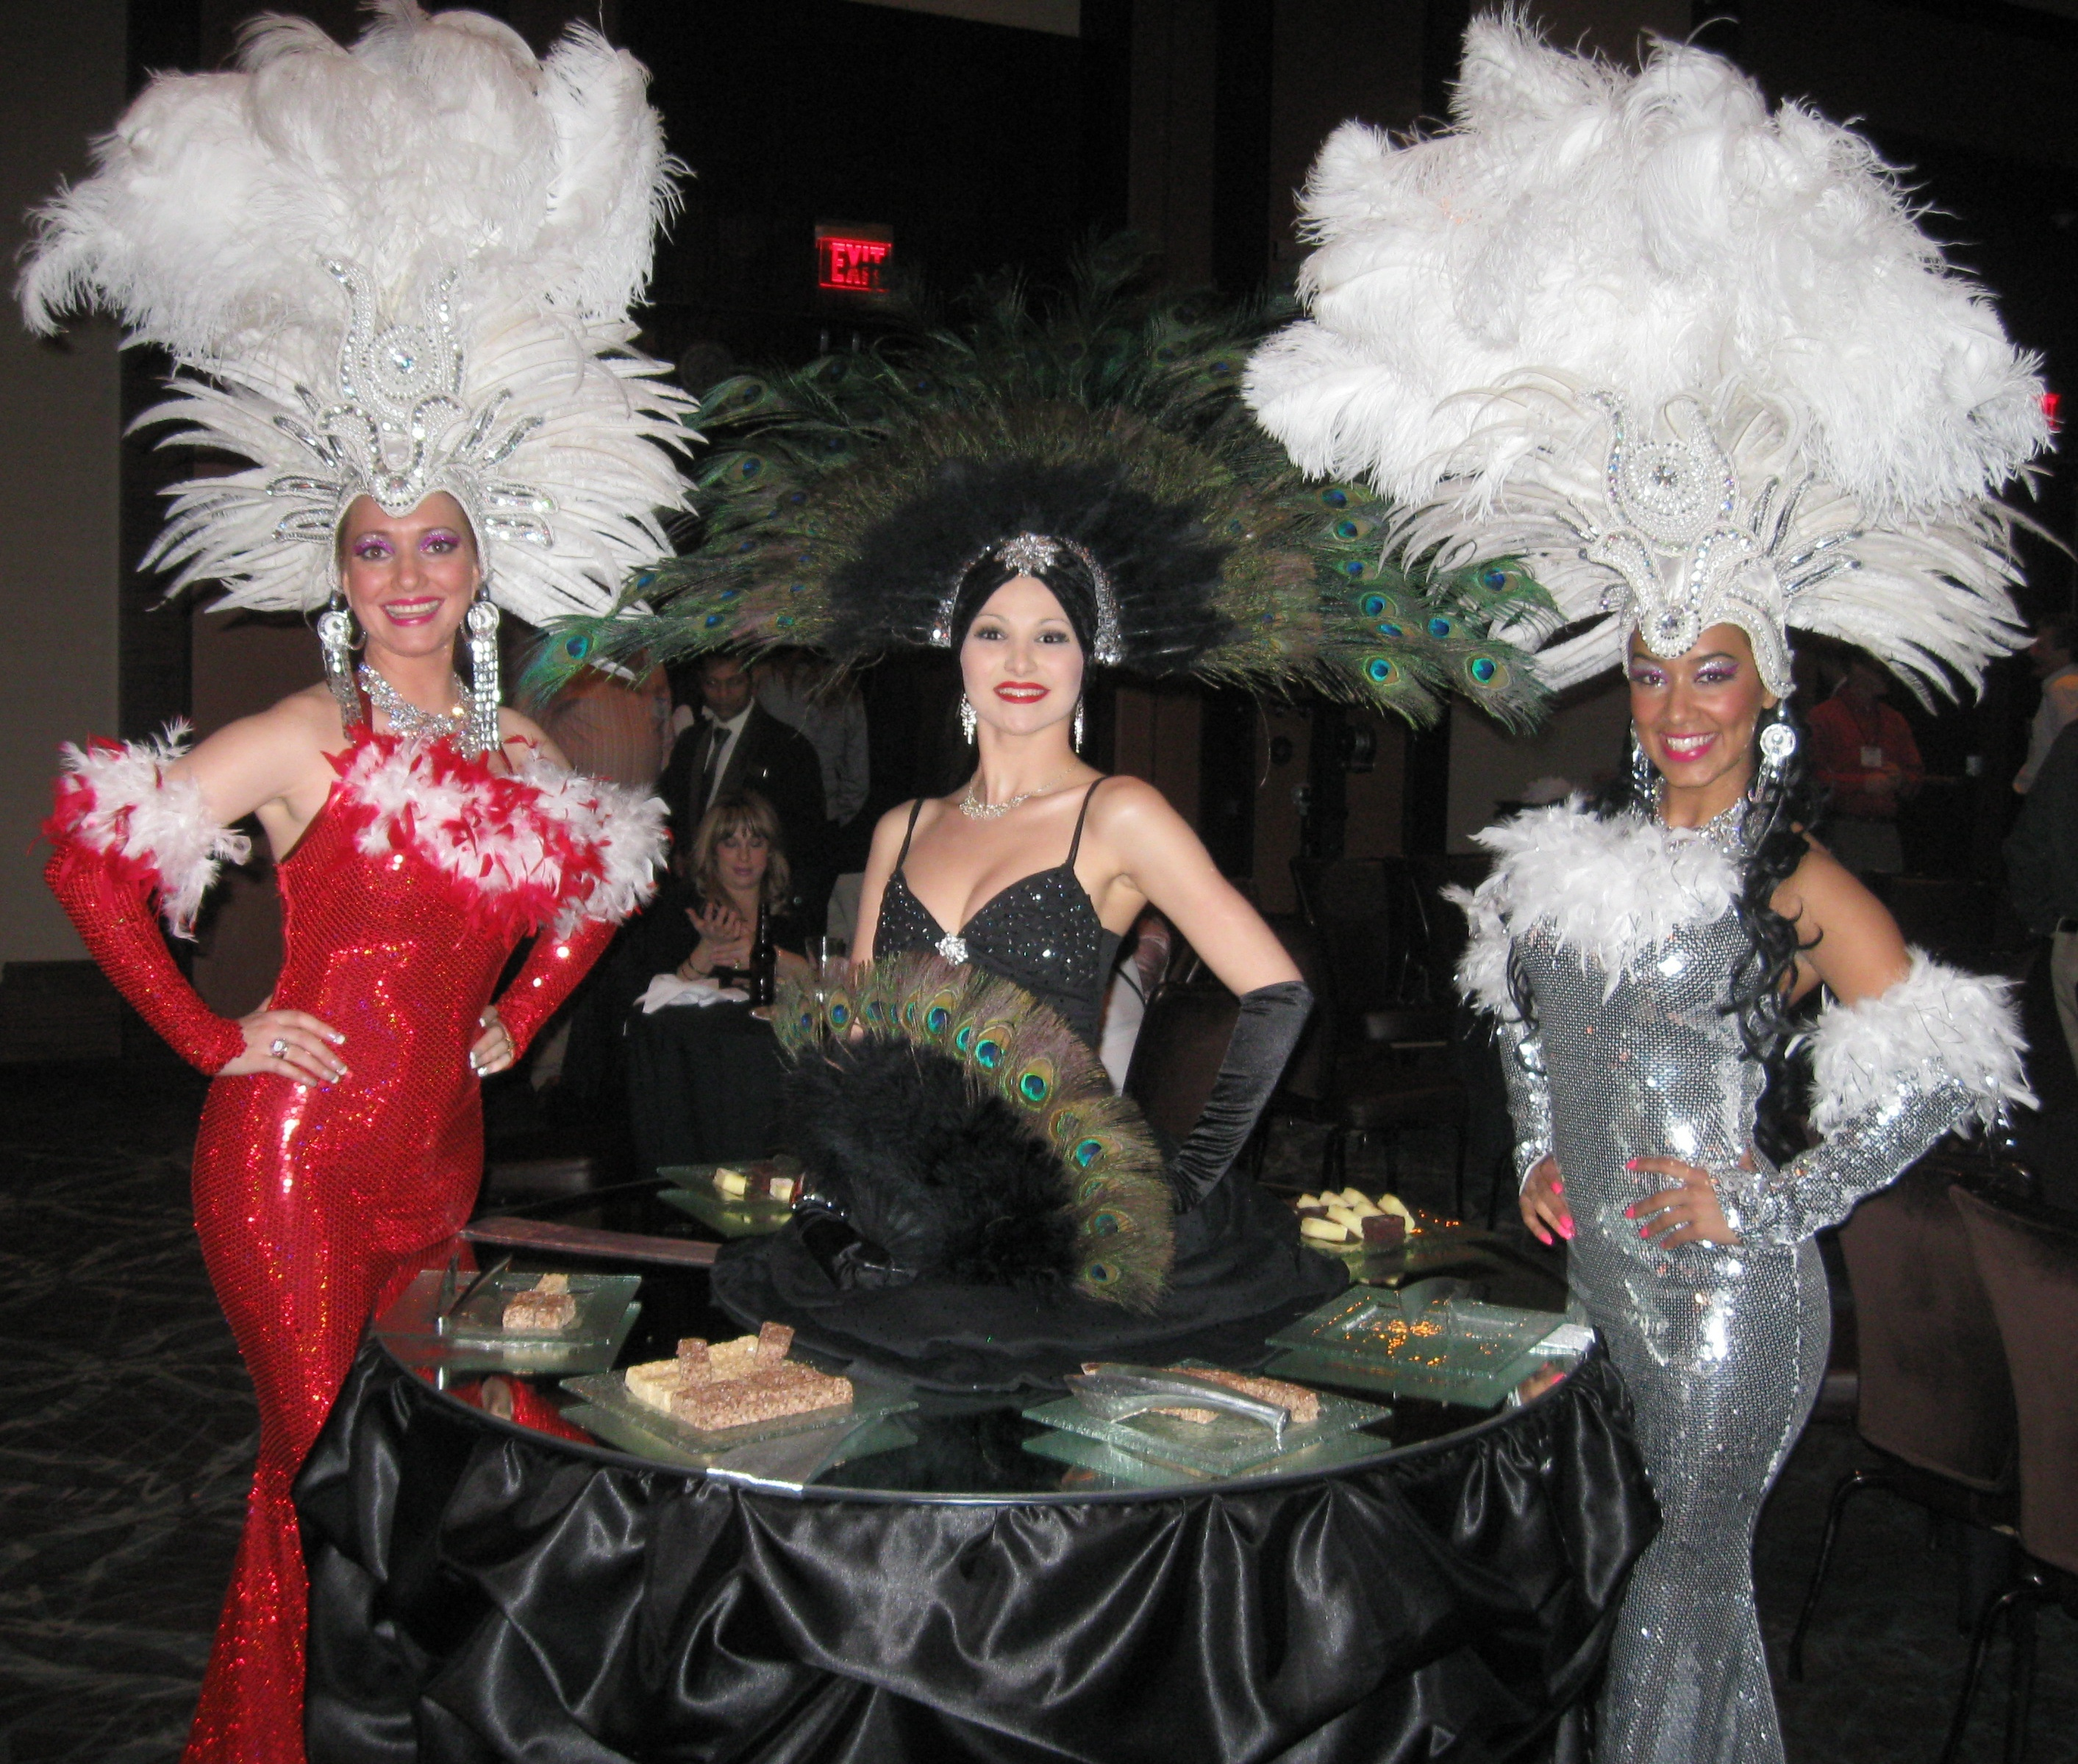 Reception, Flowers & Decor, Cakes, black, cake, Table, Vegas, Strolling, Showgirl, Strolling tables - talented tables